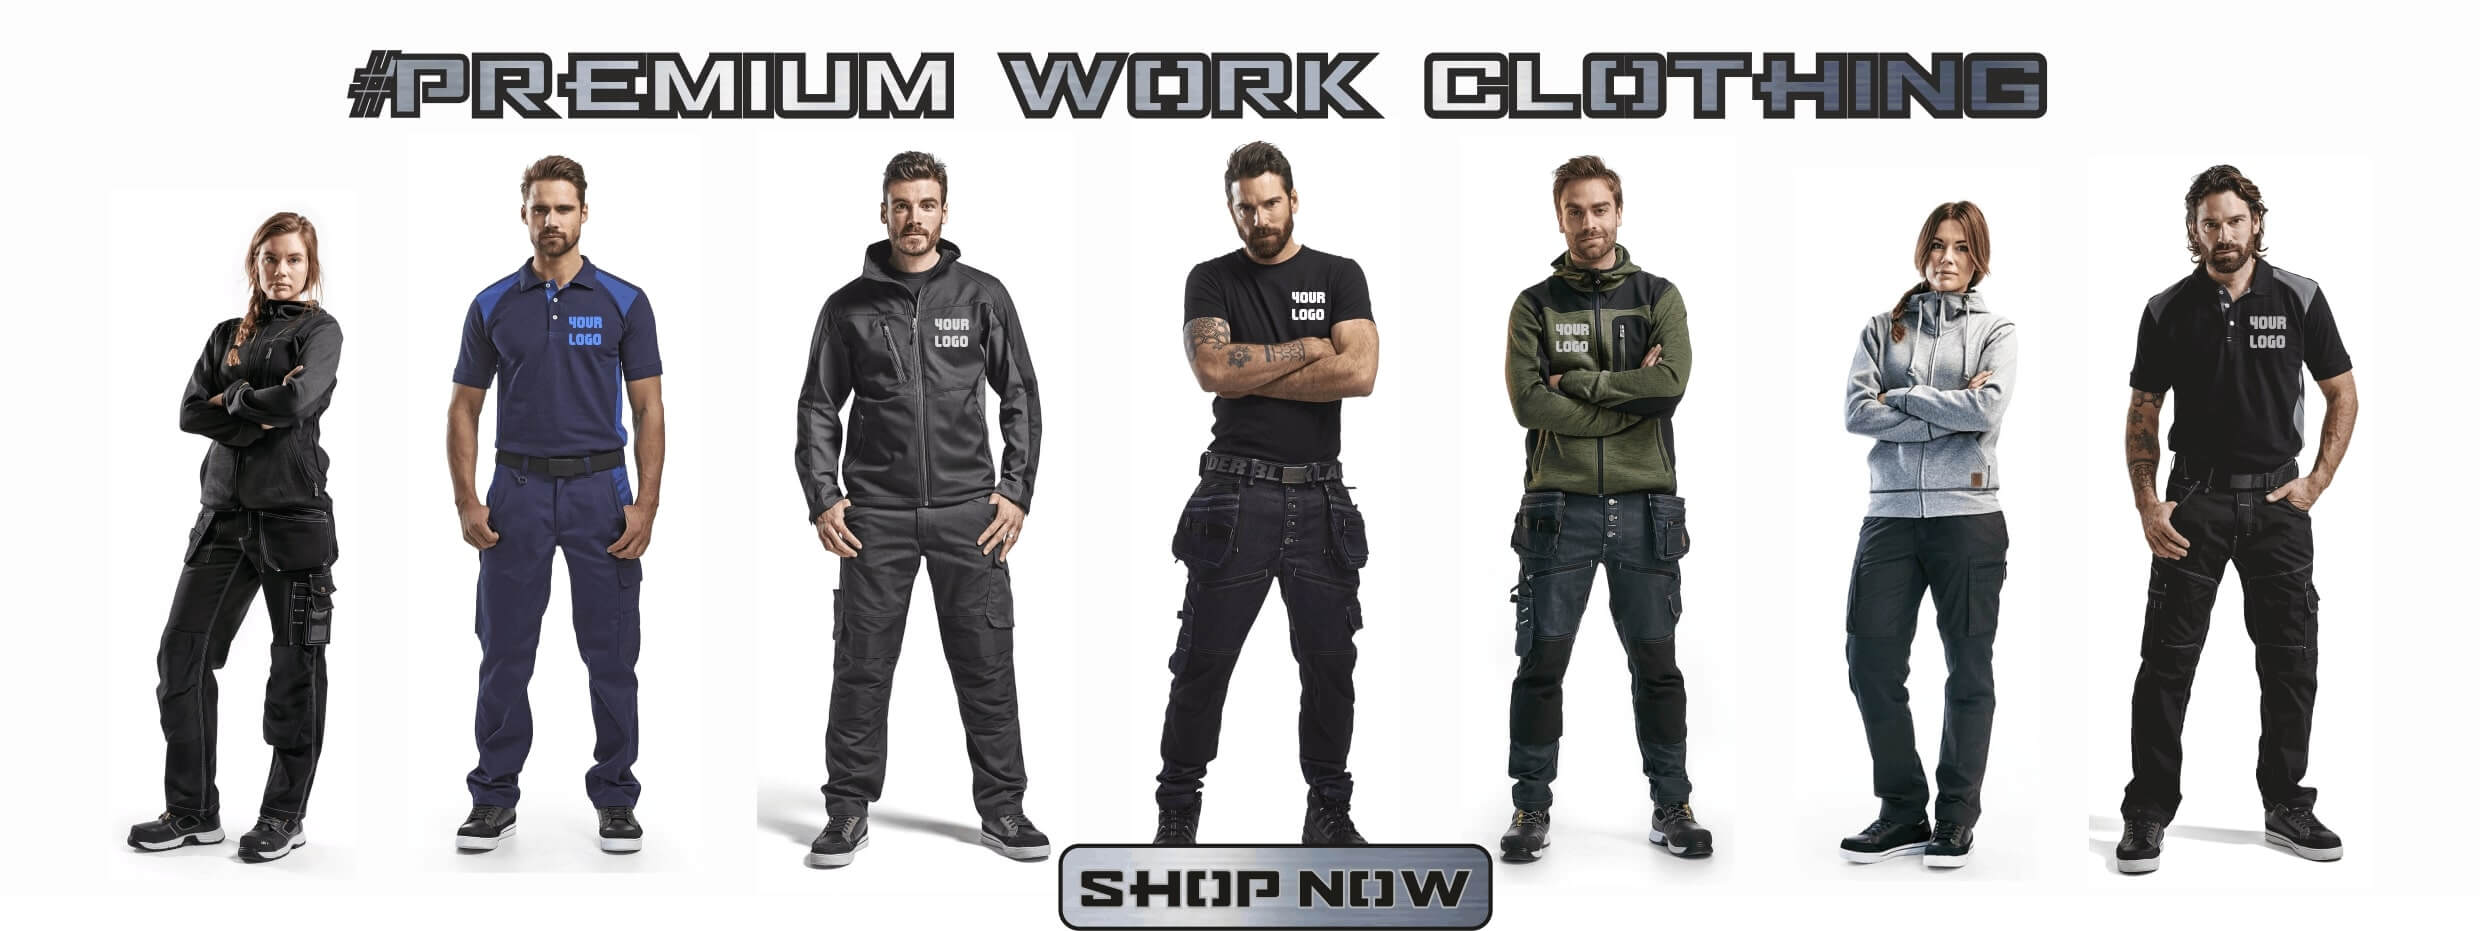 TuffShop - Premium Brand Workwear by Snickers, Blaklader and Fristads!